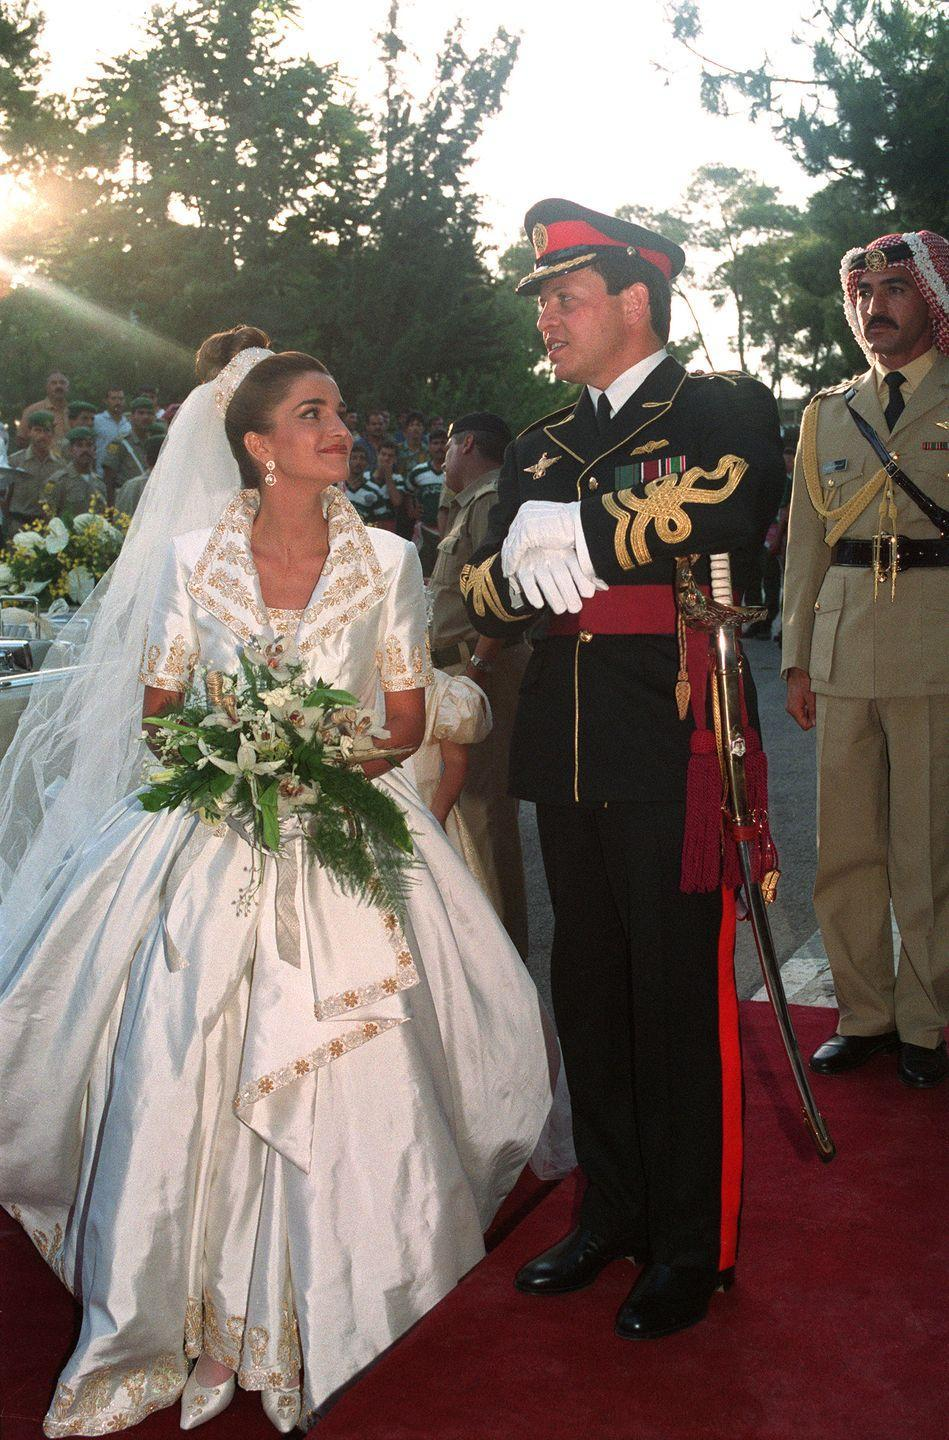 <p>Queen Rania's short-sleeve gown also featured a collar and gold embroidery. She even matched the dress to the details on her veil and shoes.</p>